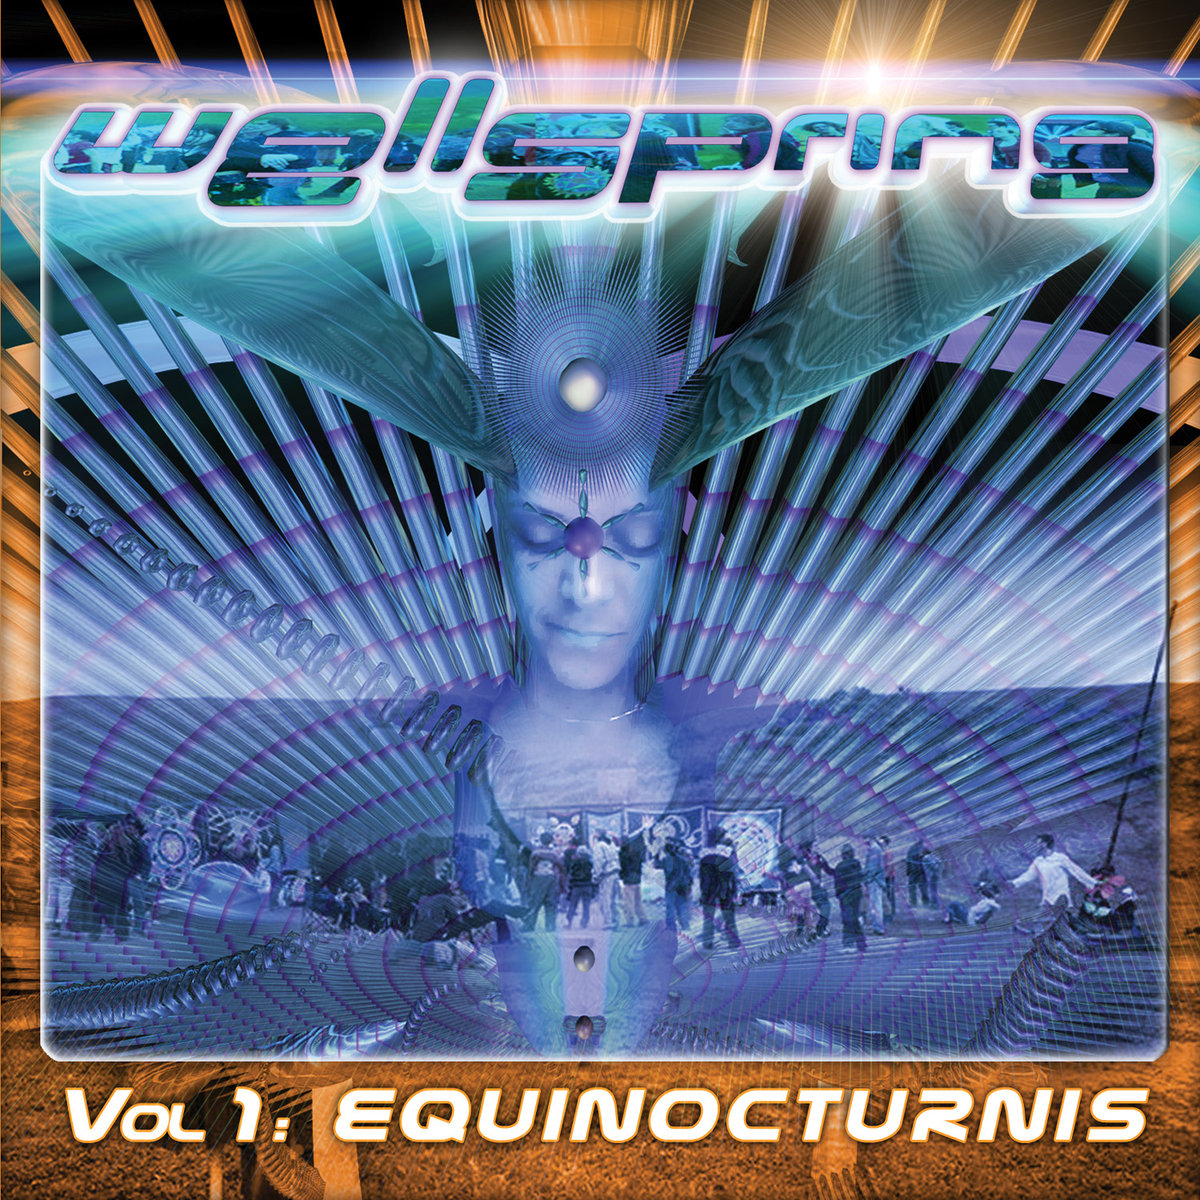 Mindstorm - Psybernetic @ 'Various Artists - Wellspring Vol. 1: Equinocturnis' album (electronic, goa)